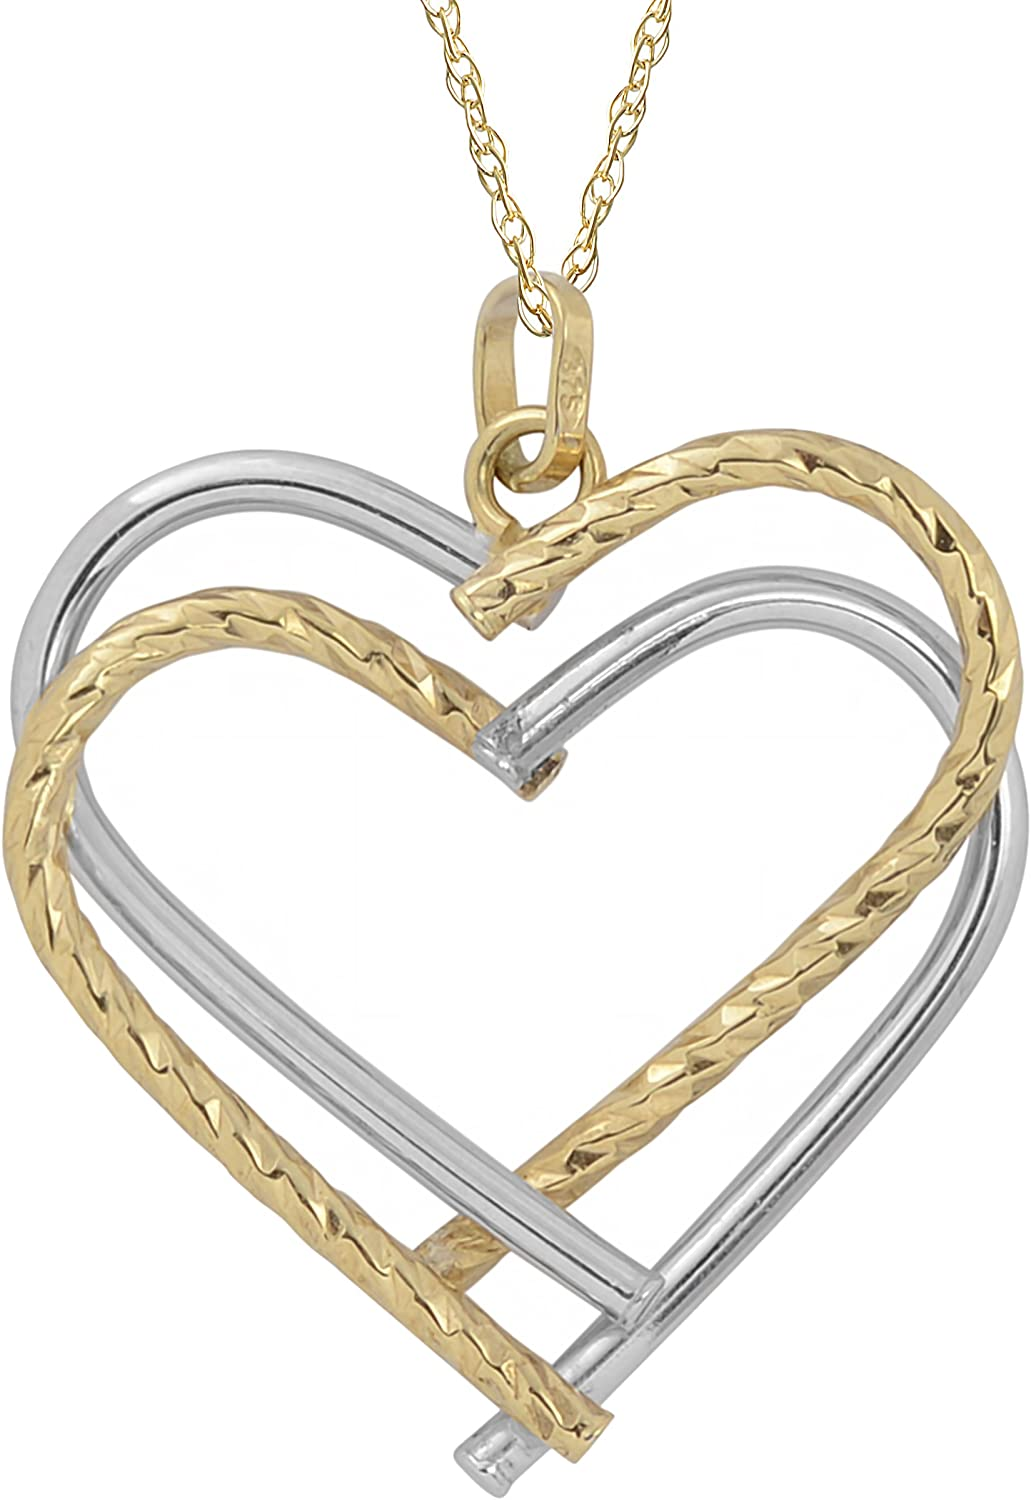 Kooljewelry 10k Two-Tone Gold Double Heart Pendant Rope Chain Necklace (18 inch)